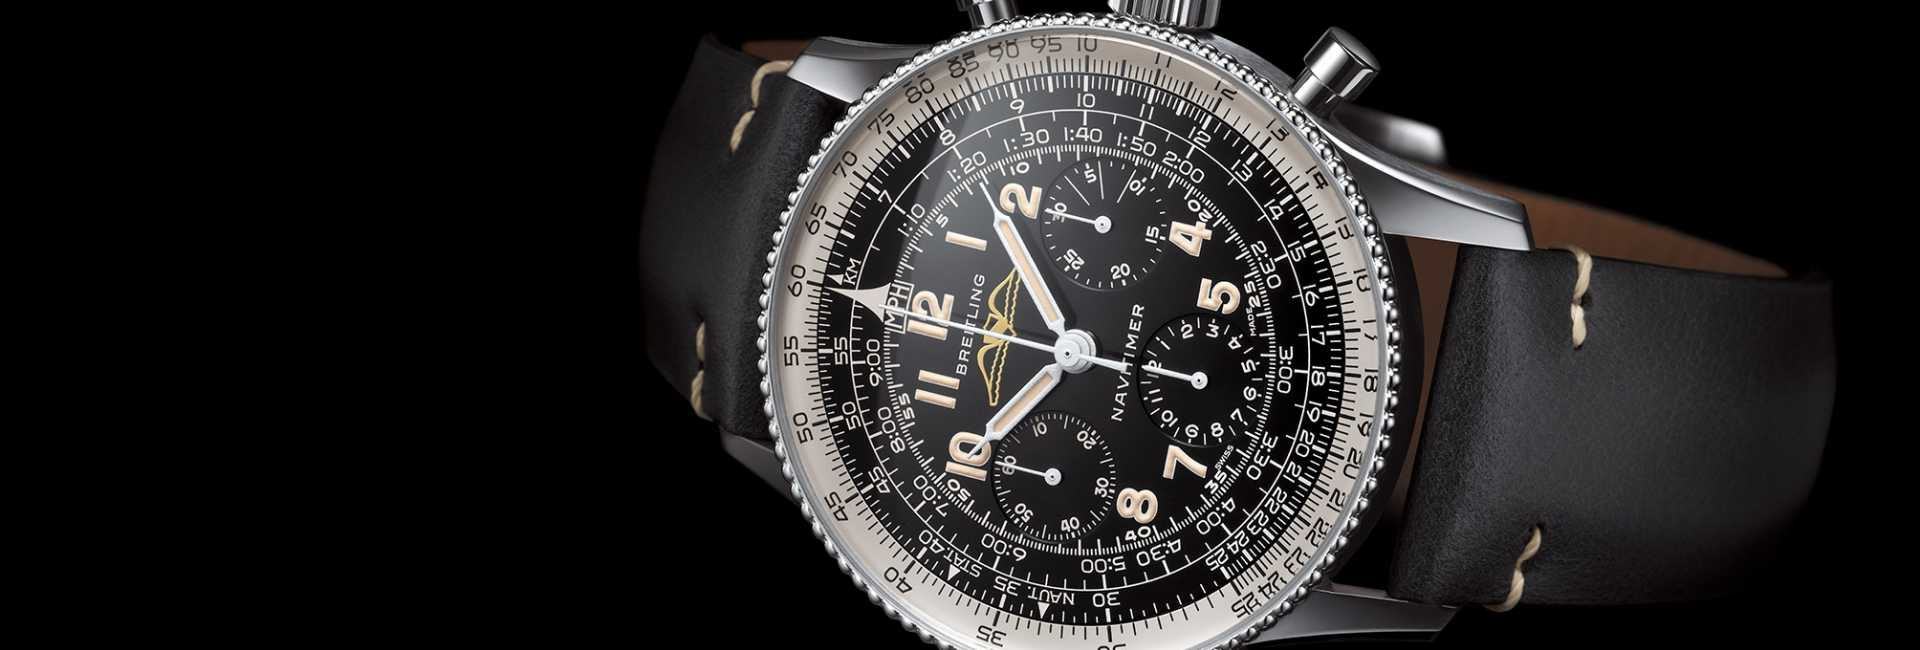 BREITLING - Navitimer 1959 Re-Edition